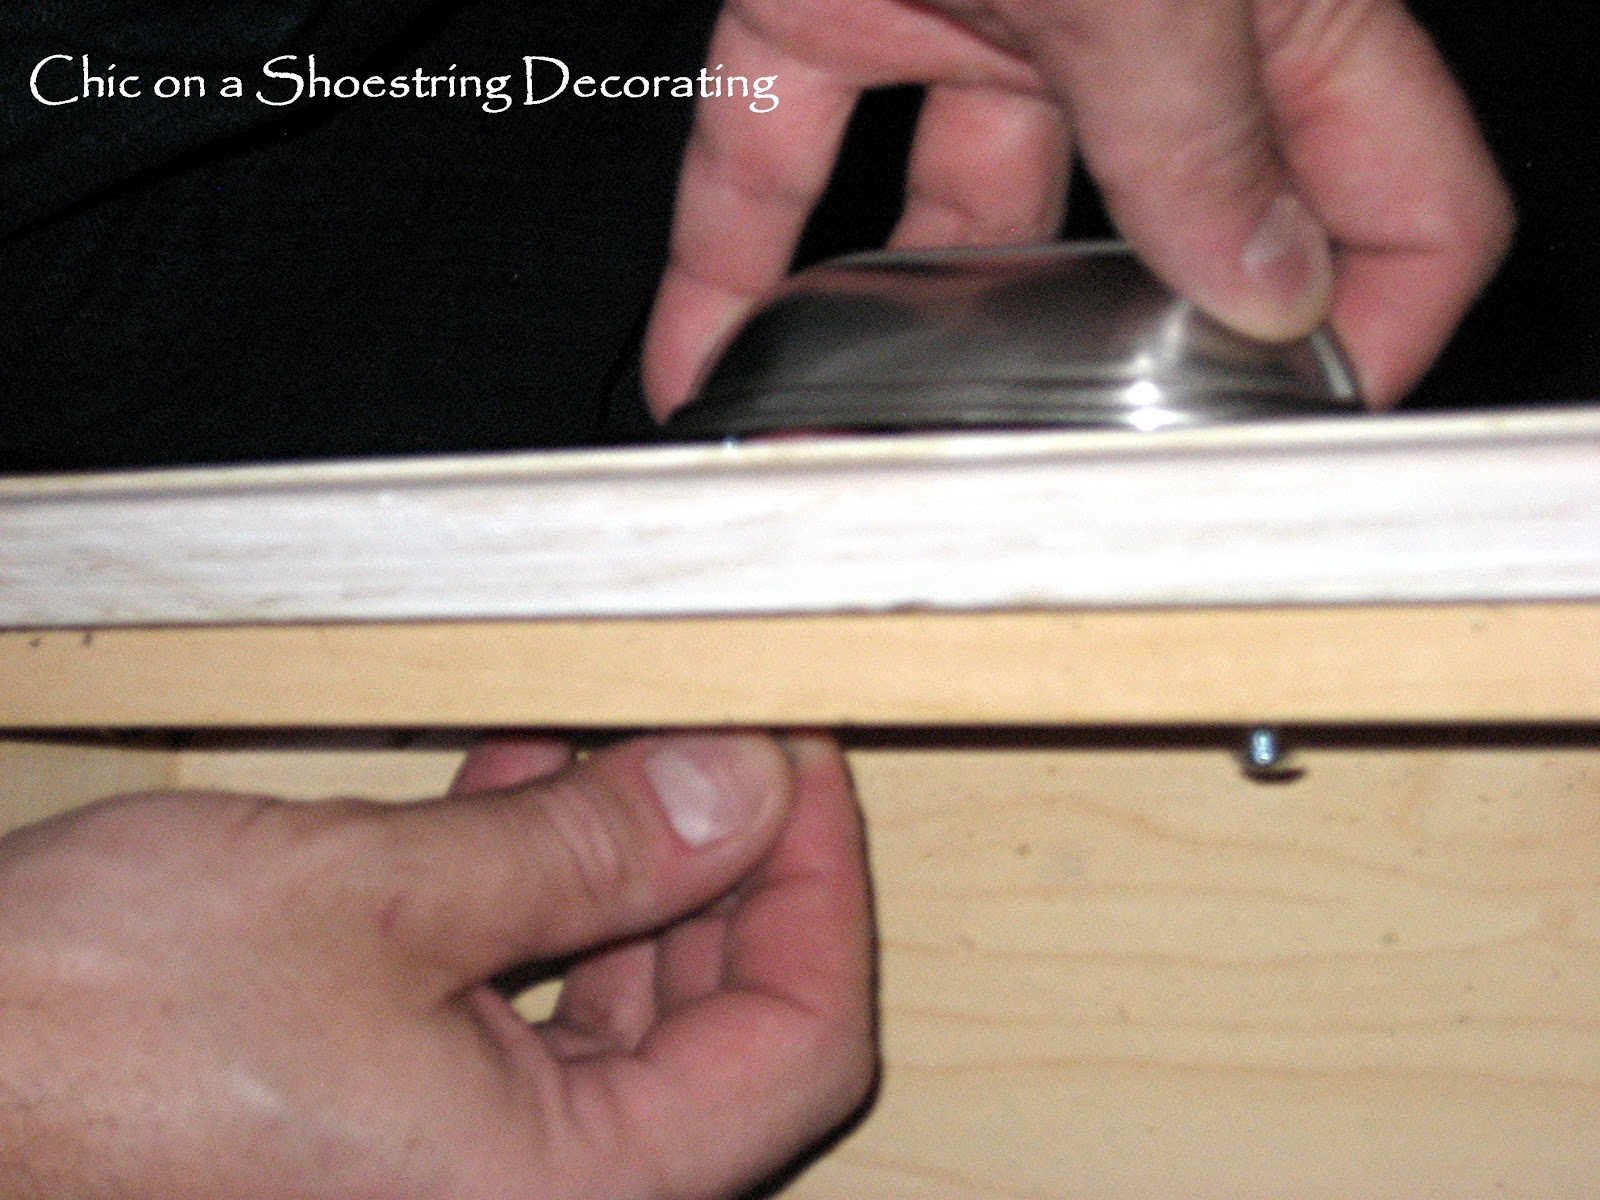 chic on a shoestring decorating how to change your kitchen chic on a shoestring decorating how to change your kitchen cabinet knobs or handles